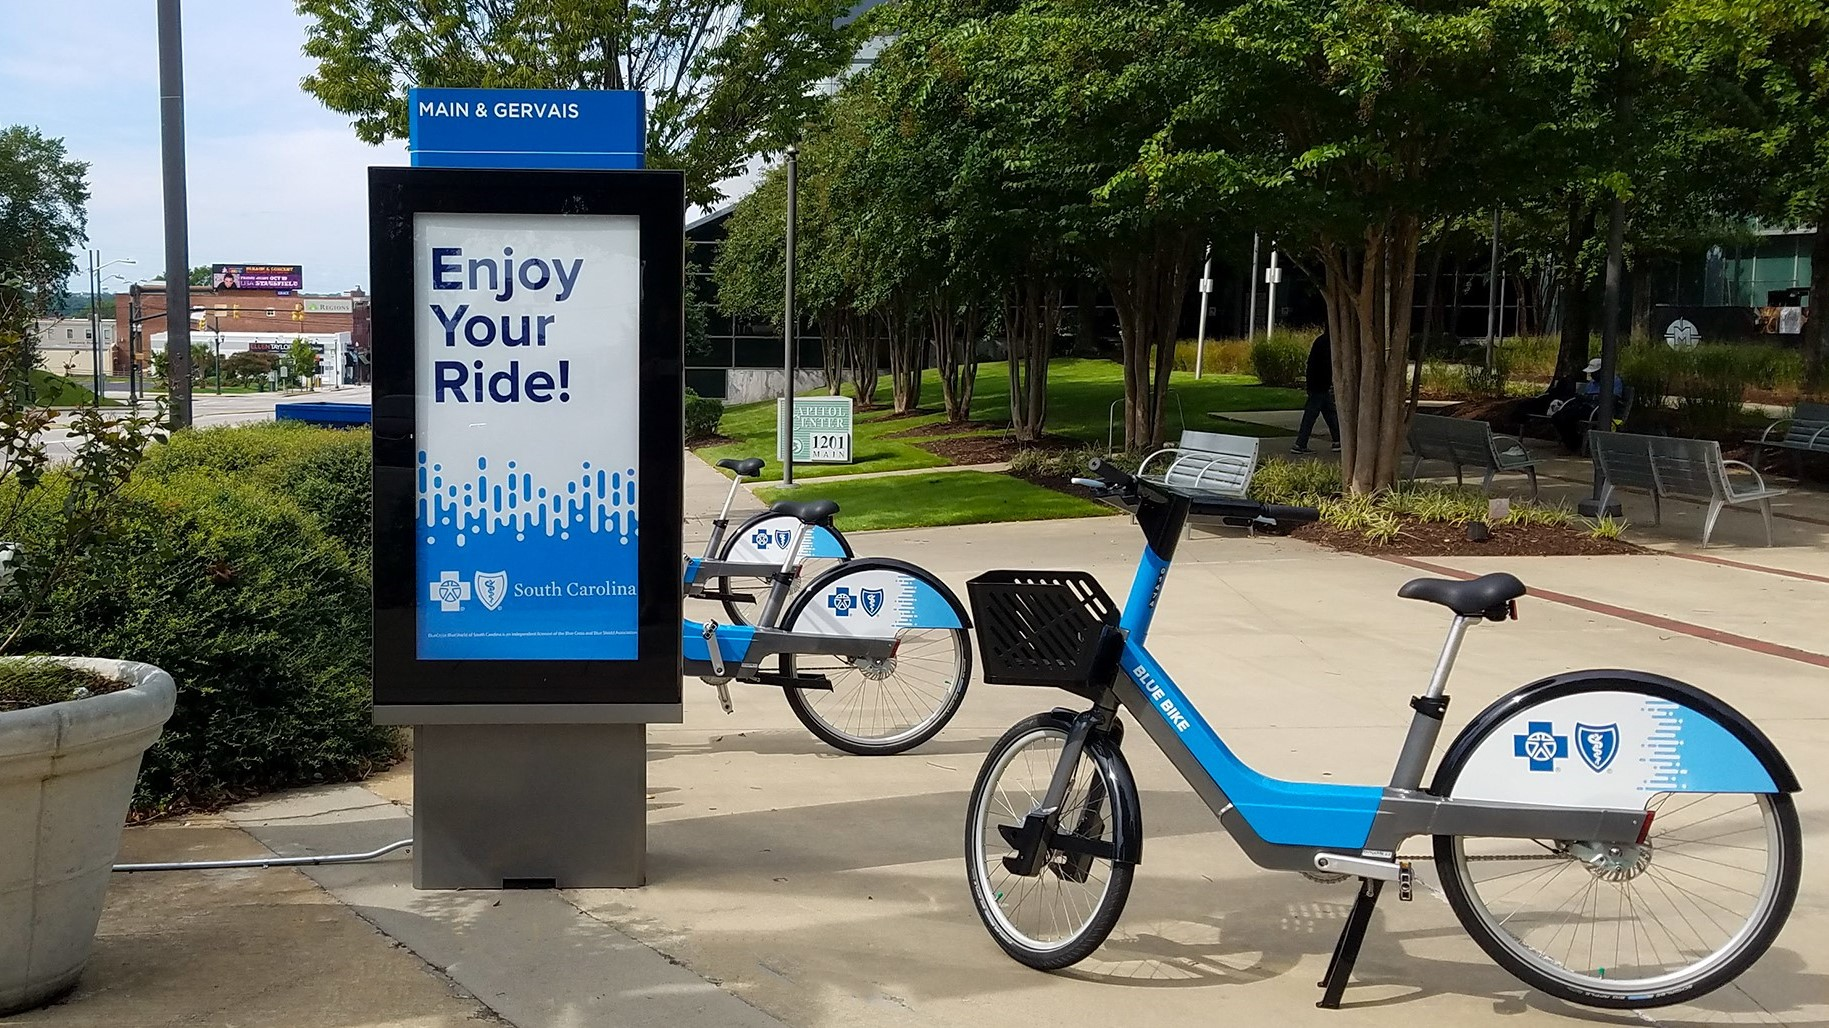 Corps Logistics to Serve South Carolina Bike Share Program